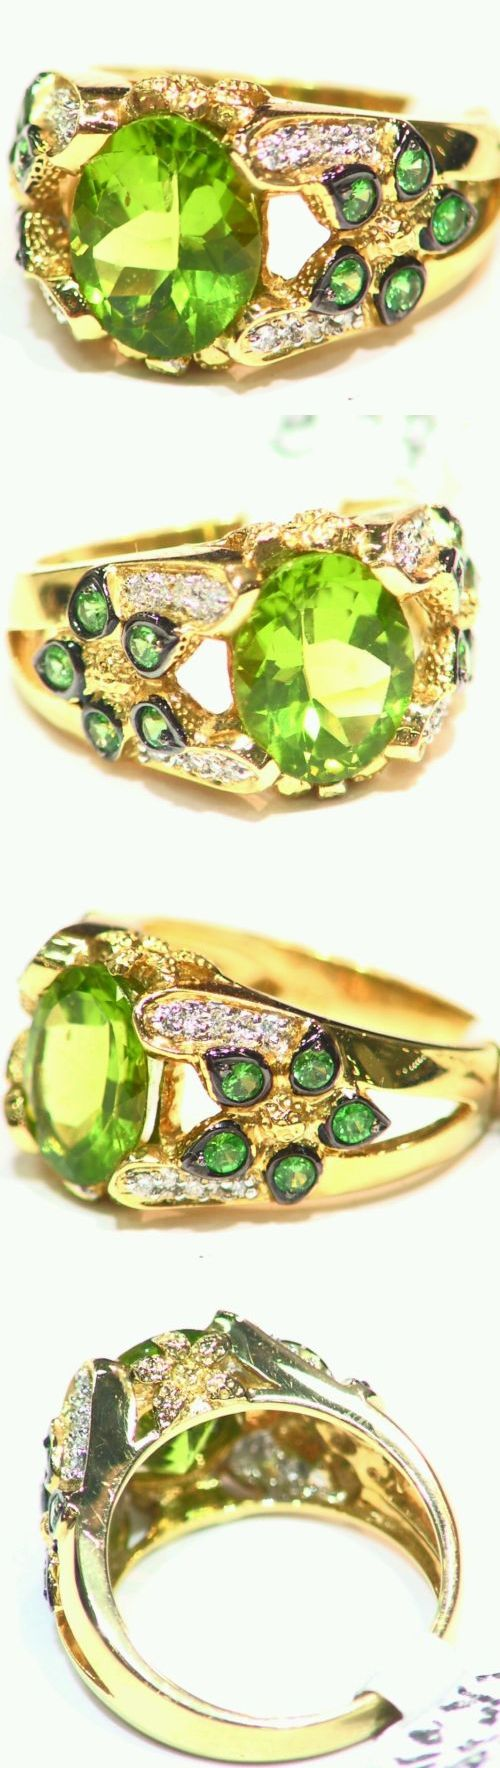 Rings 165014: 3.77Ct 18K Gold Natural Peridot Round Cut White Diamond Vintage Engagement Ring -> BUY IT NOW ONLY: $731 on eBay!